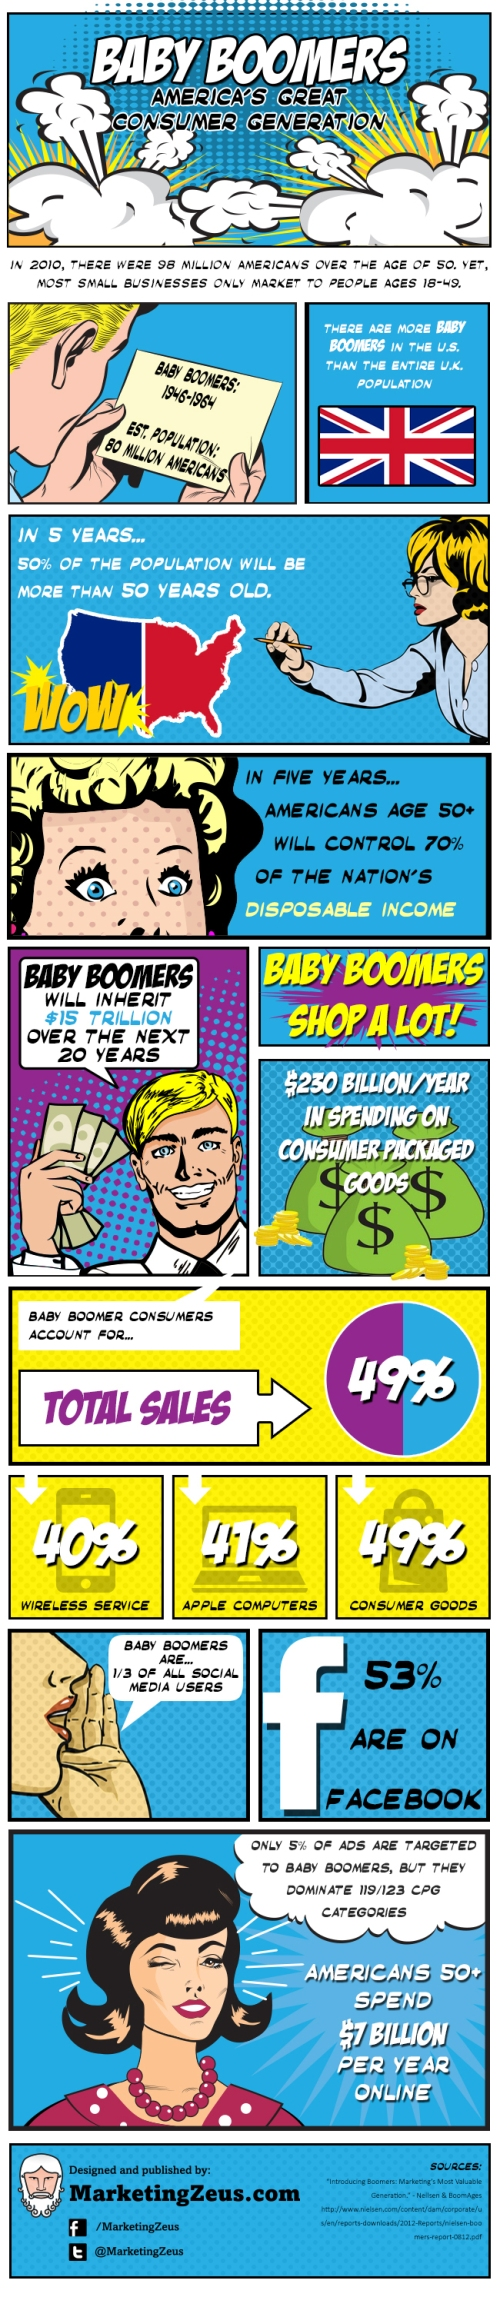 baby-boomers-americas-greatest-consumer-generation_51950d2679881